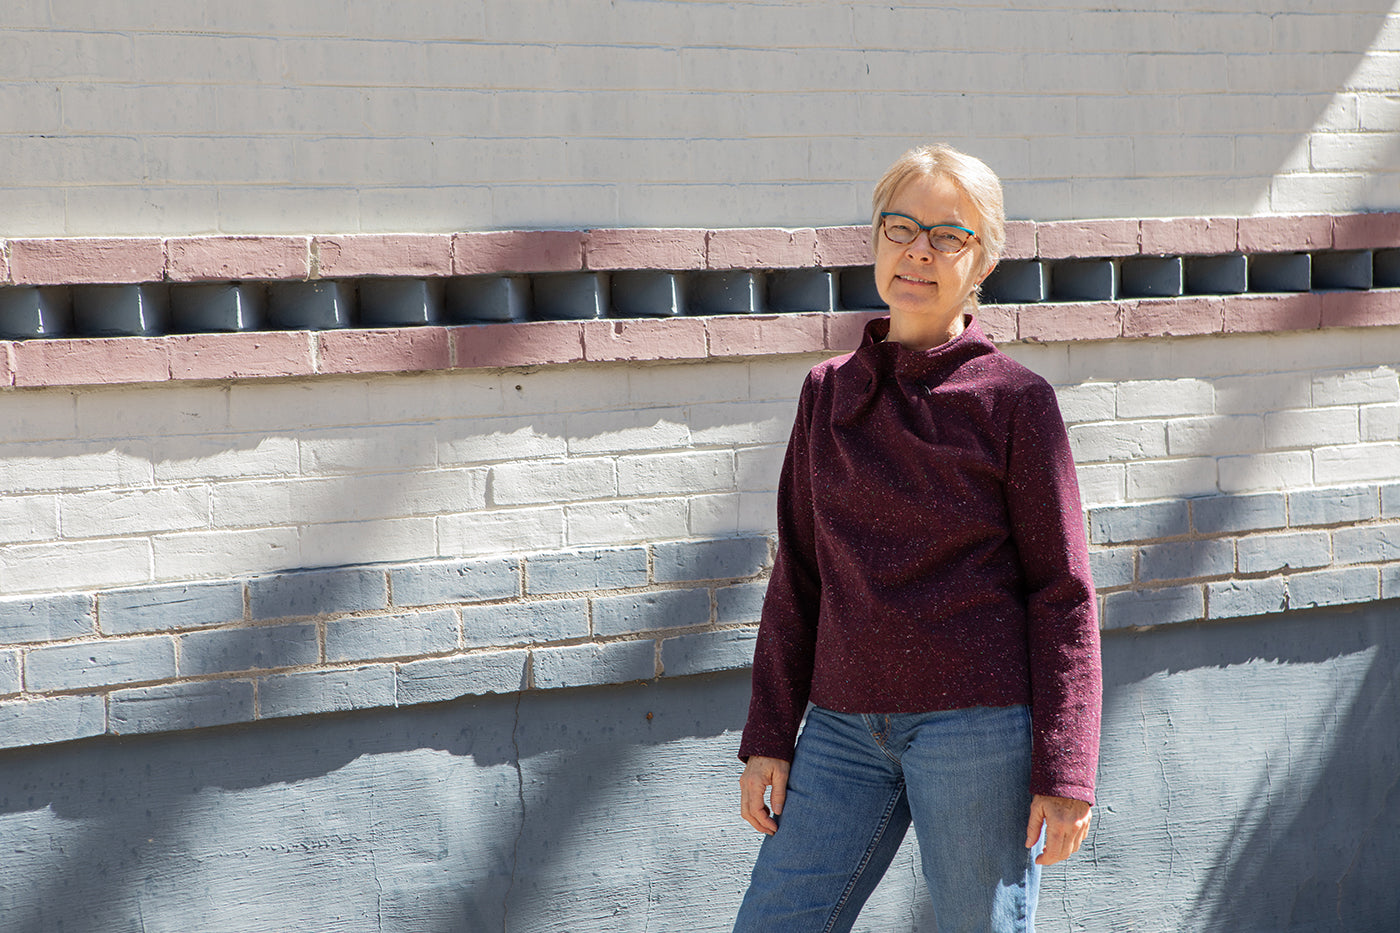 This is an image of a woman wearing a maroon flannel elastic neck shirt standing in front of a wall outside with diagonal shadows.